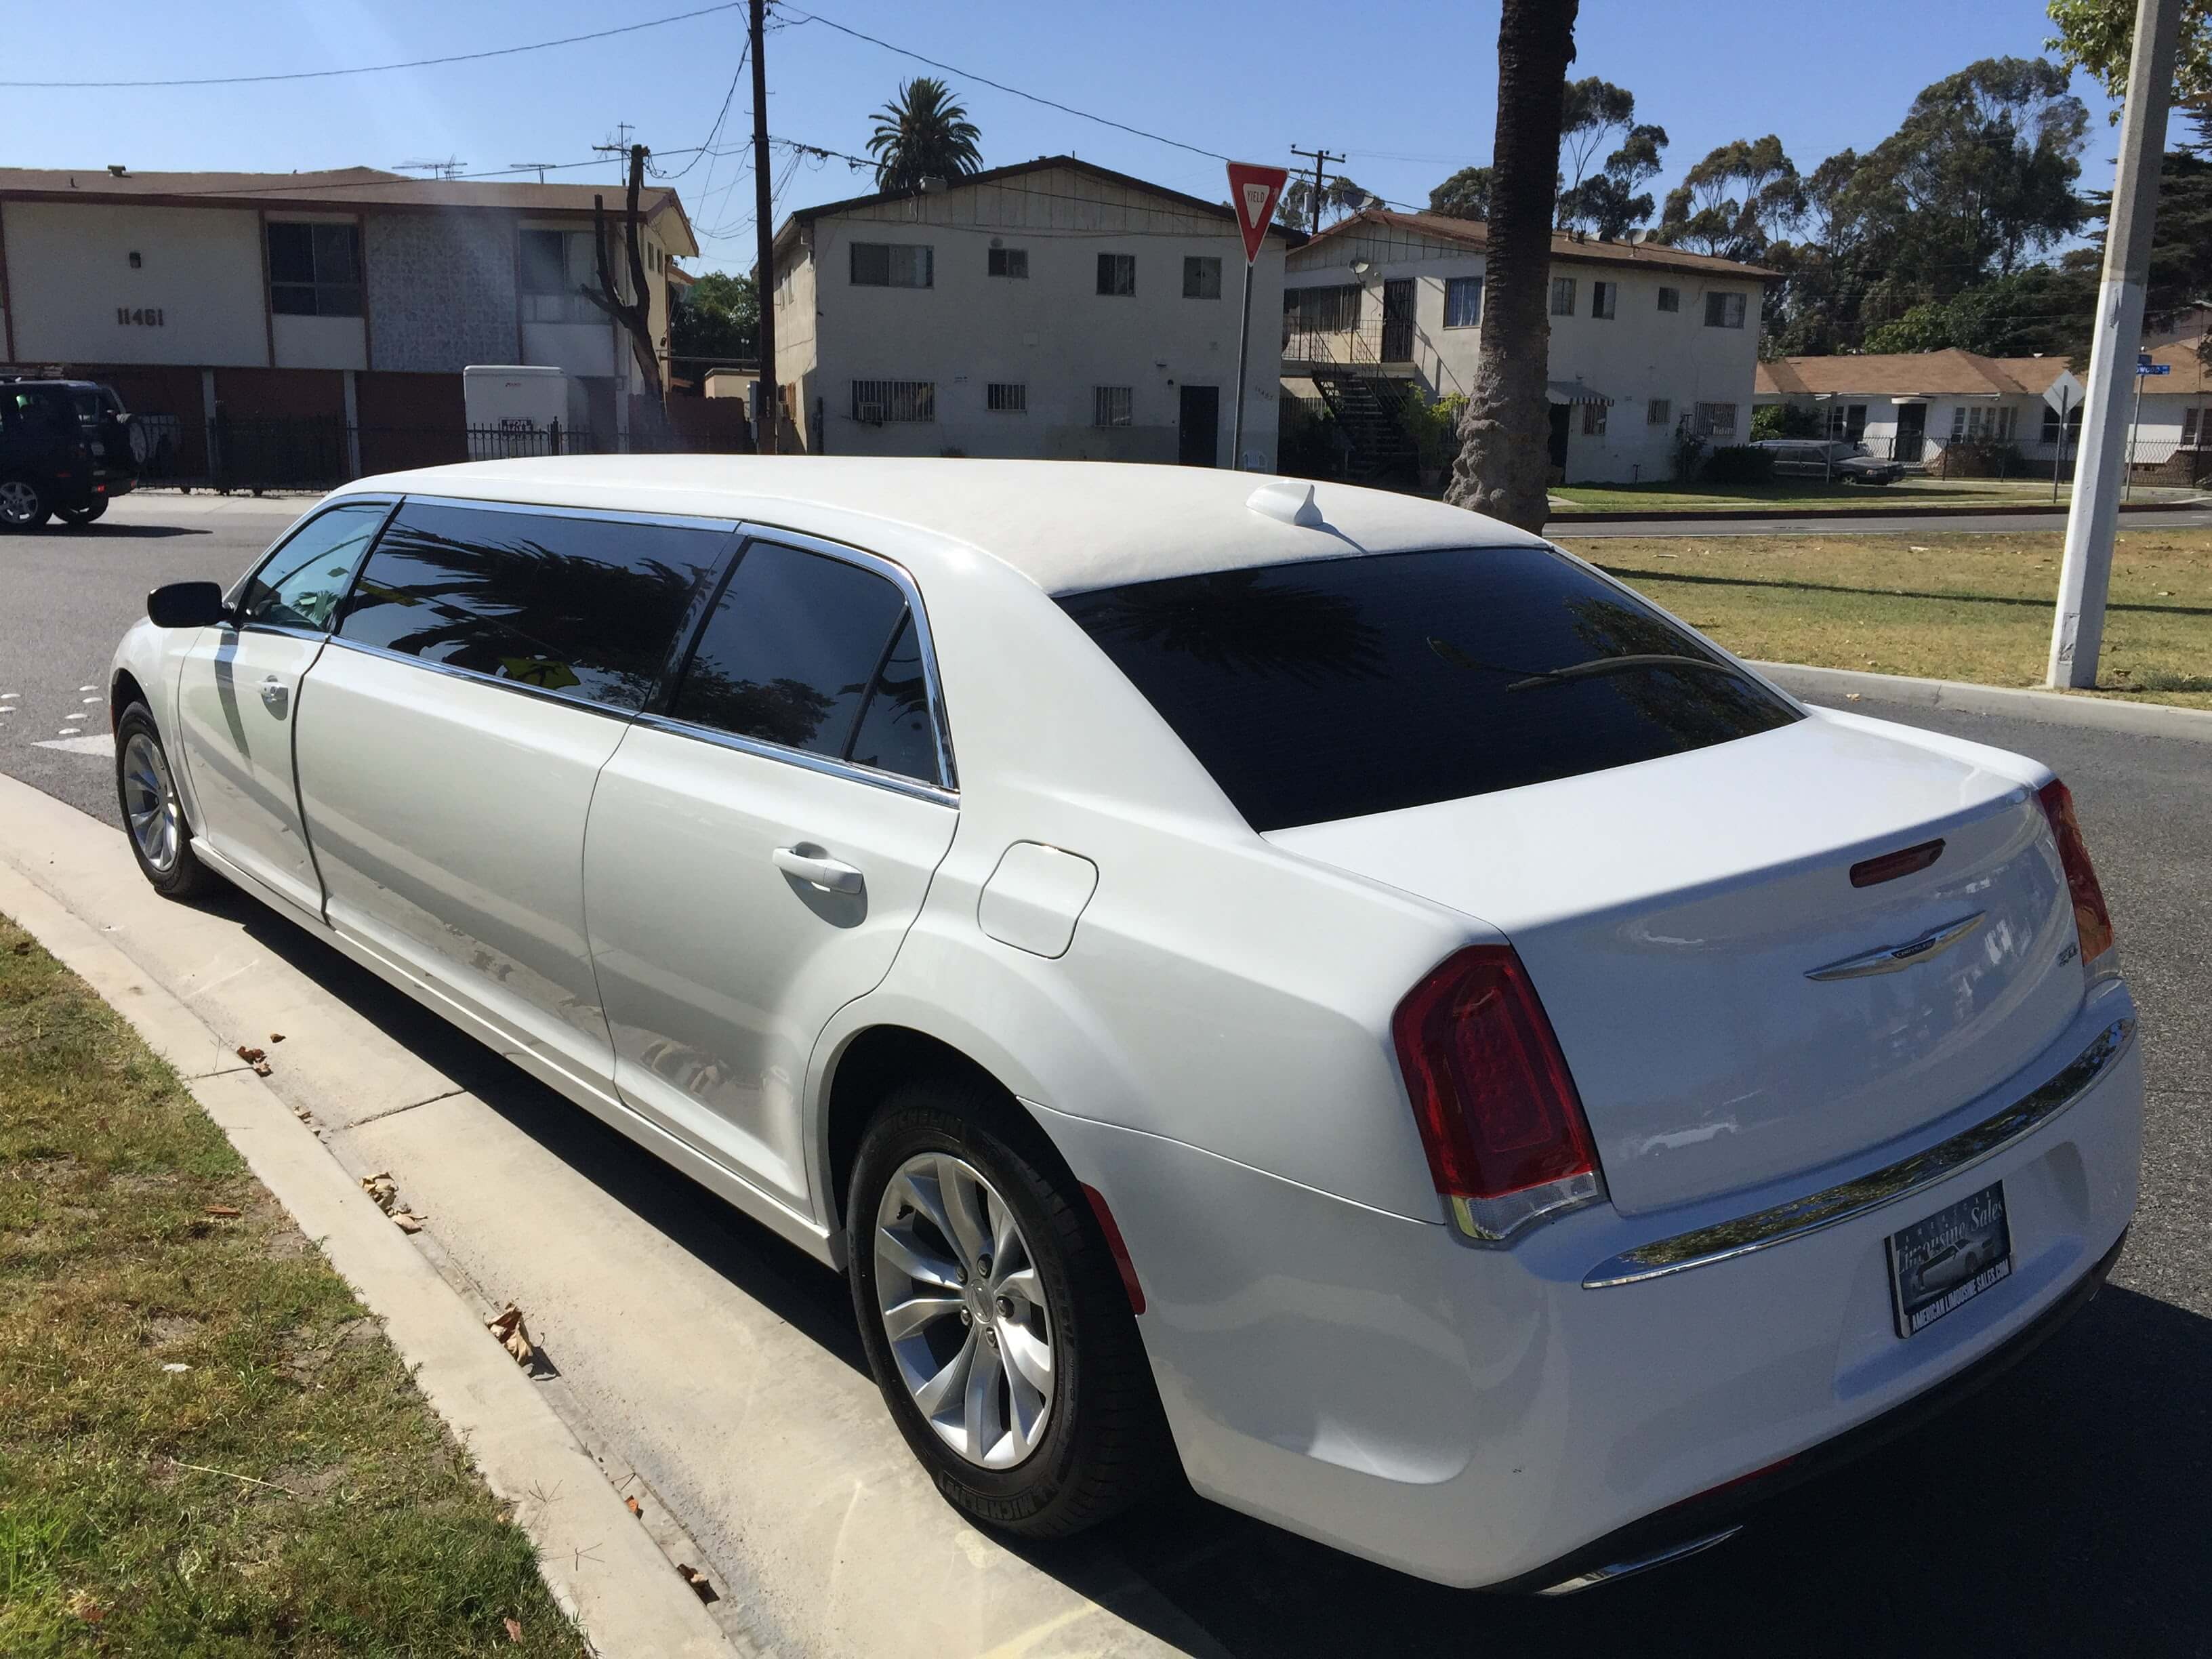 white 70-inch chrysler 300 limousine for sale #6228 left rear